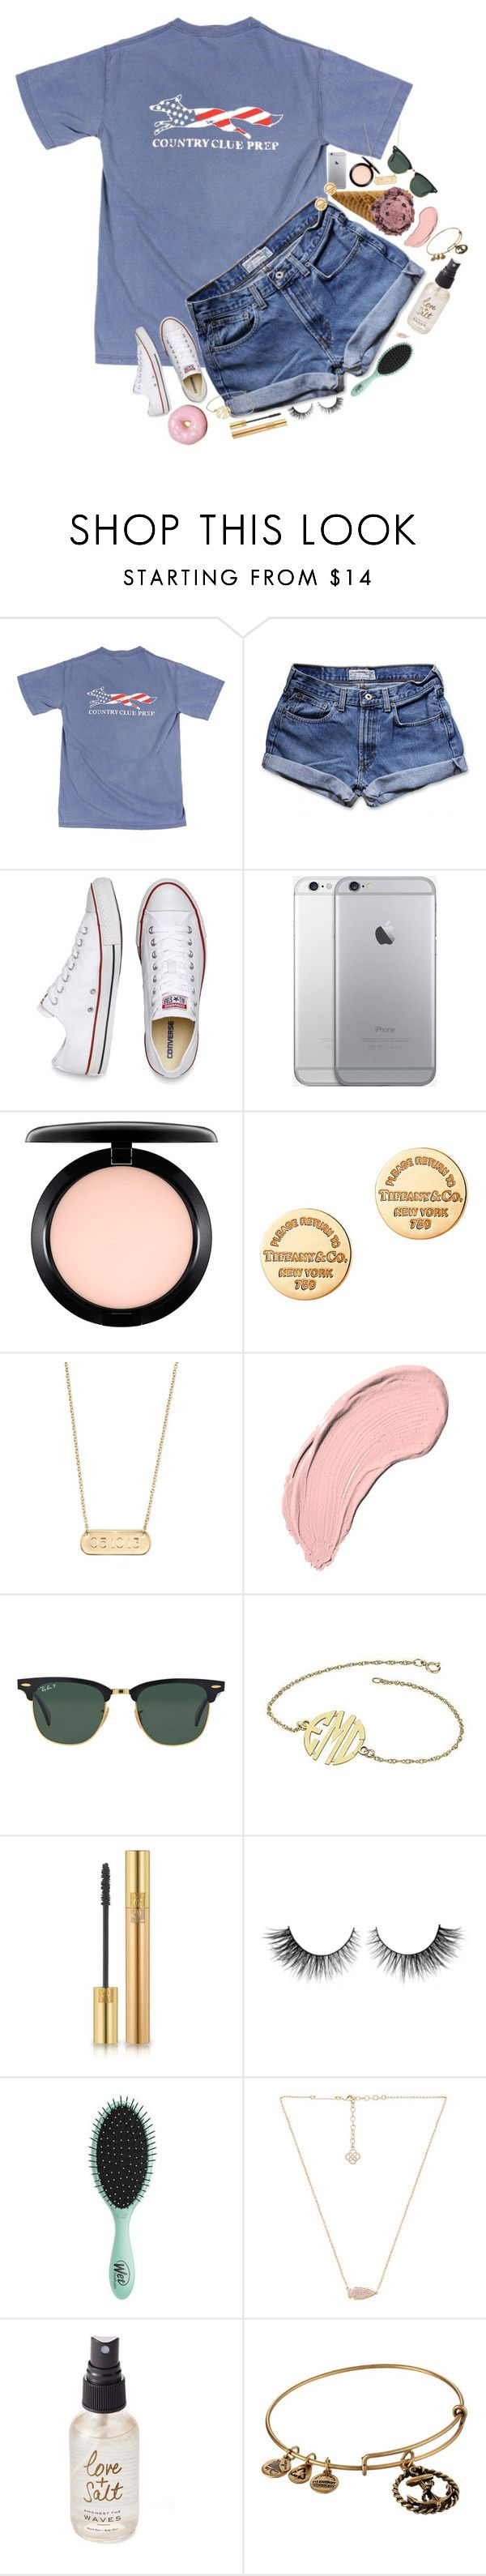 """""""Please go get Kendall michele to 200 followers!! She's really close!"""" by erinlmarkel ❤ liked on Polyvore featuring Abercrombie & Fitch, Converse, MAC Cosmetics, Tiffany & Co., Stella & Dot, NYX, Ray-Ban, Yves Saint Laurent, Rimini and Topshop"""